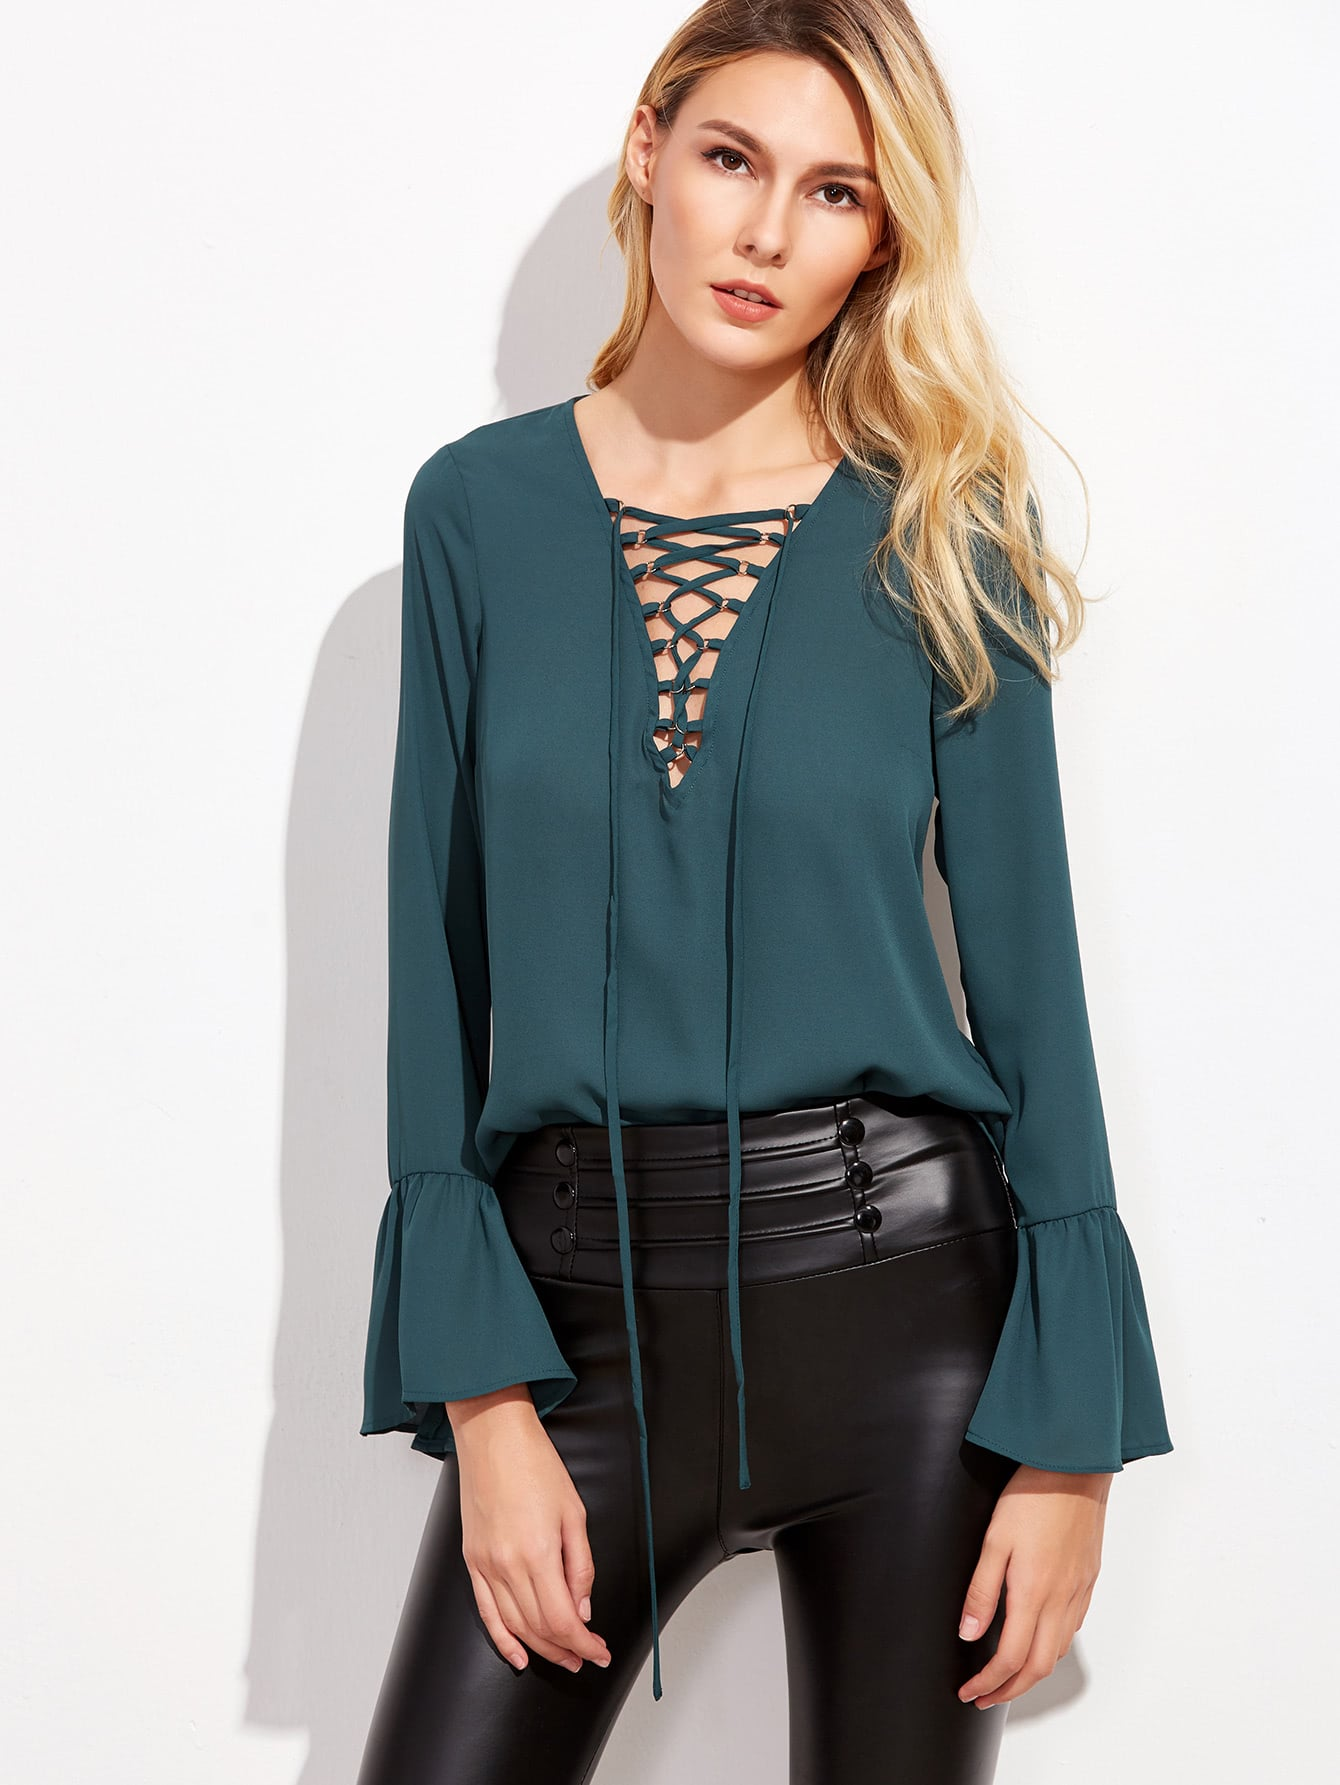 Rich Green Lace Up V Neck Bell Sleeve Blouse blouse161005401